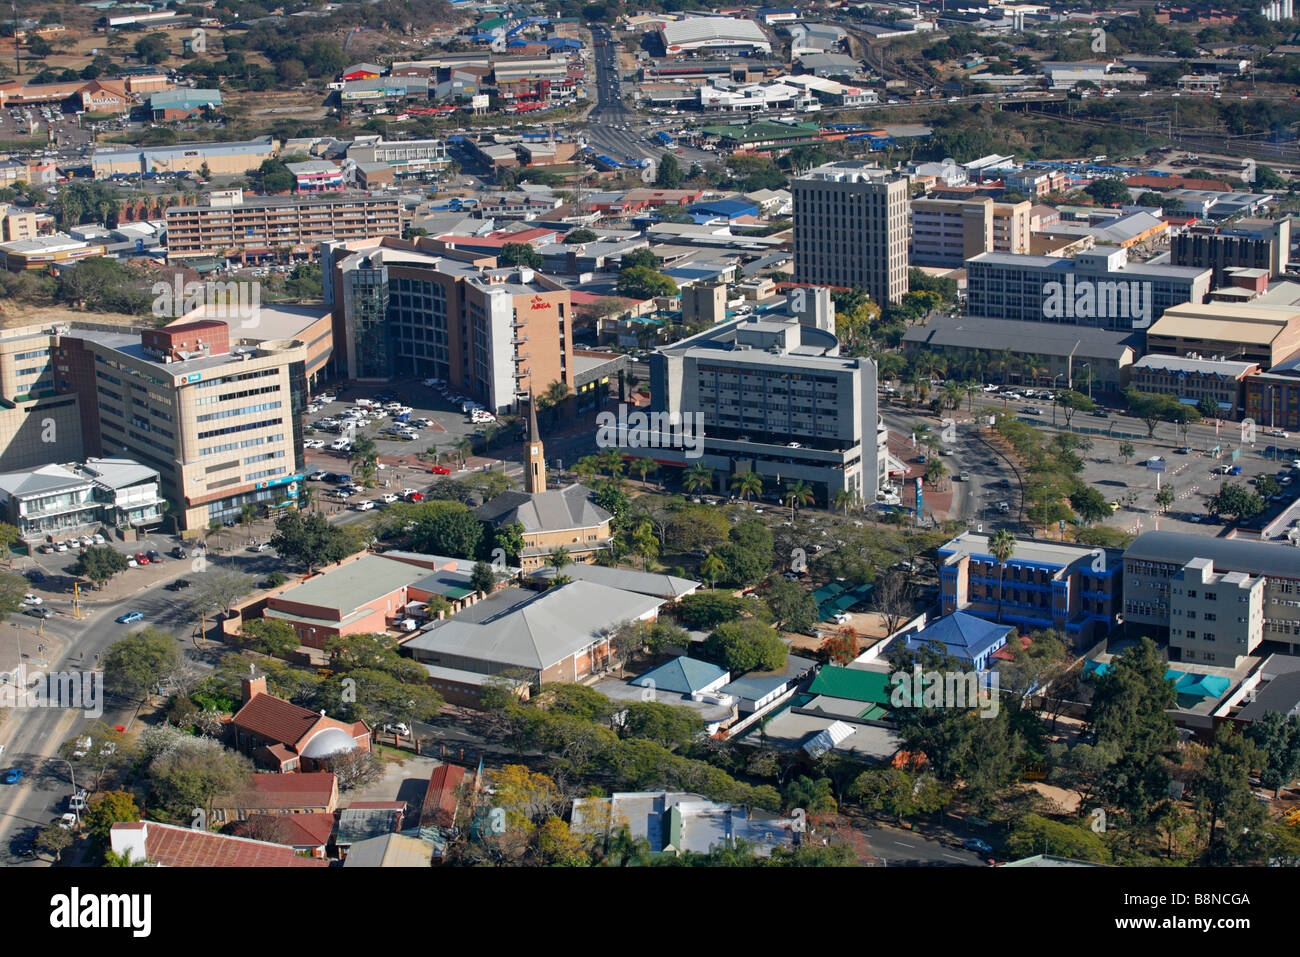 An aerial view of the Nelspruit town centre - Stock Image